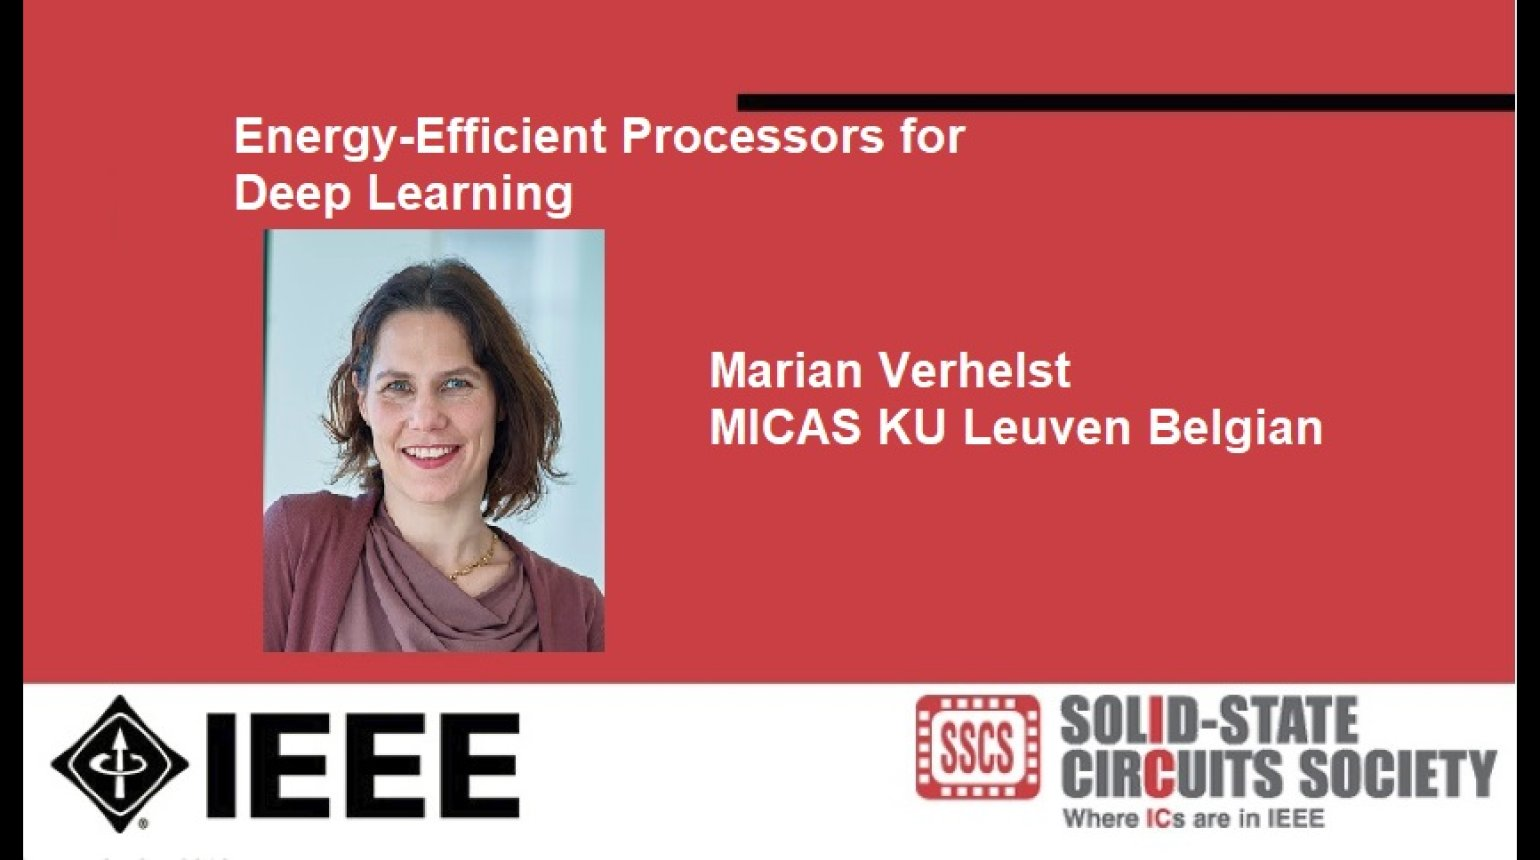 Energy-Efficient Processors for Deep Learning Video